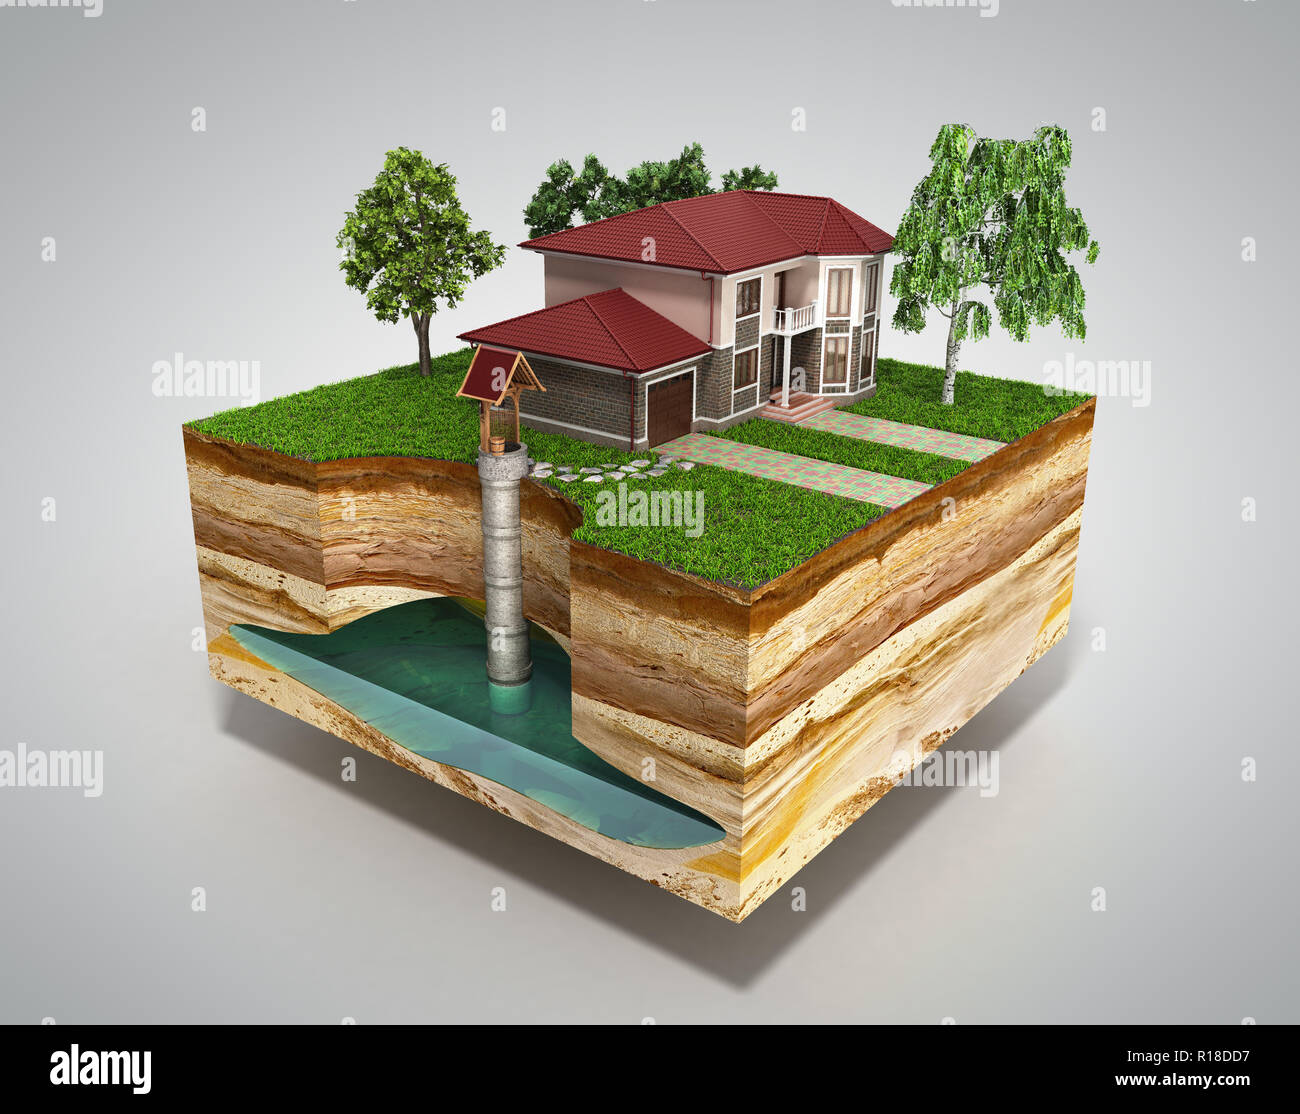 water well system The image depicts an underground aquifer 3d render on grey - Stock Image